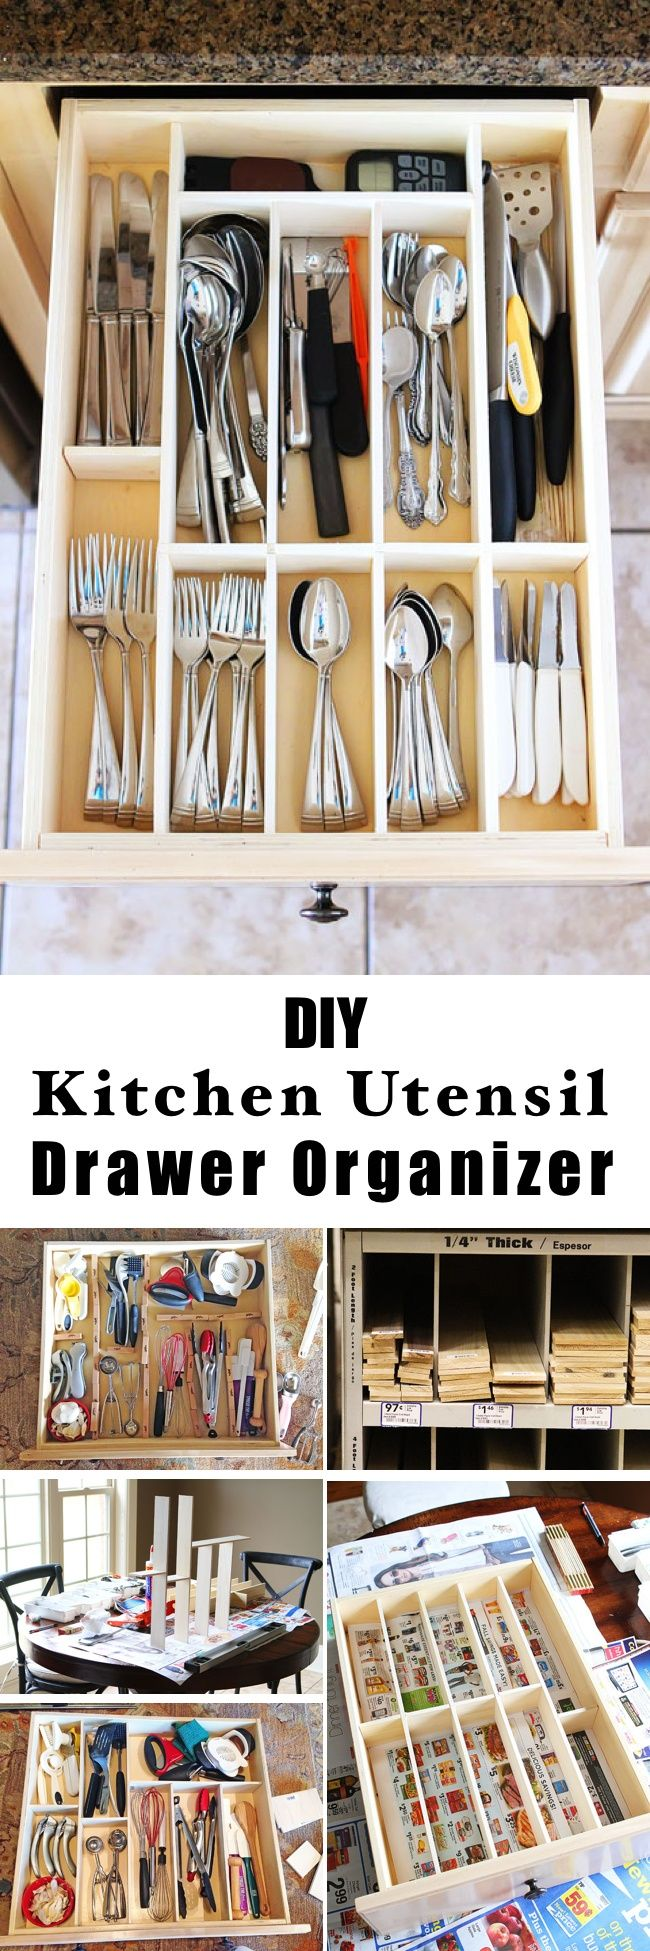 15 Innovative DIY Kitchen Organization & Storage Ideas #kitchenutensils